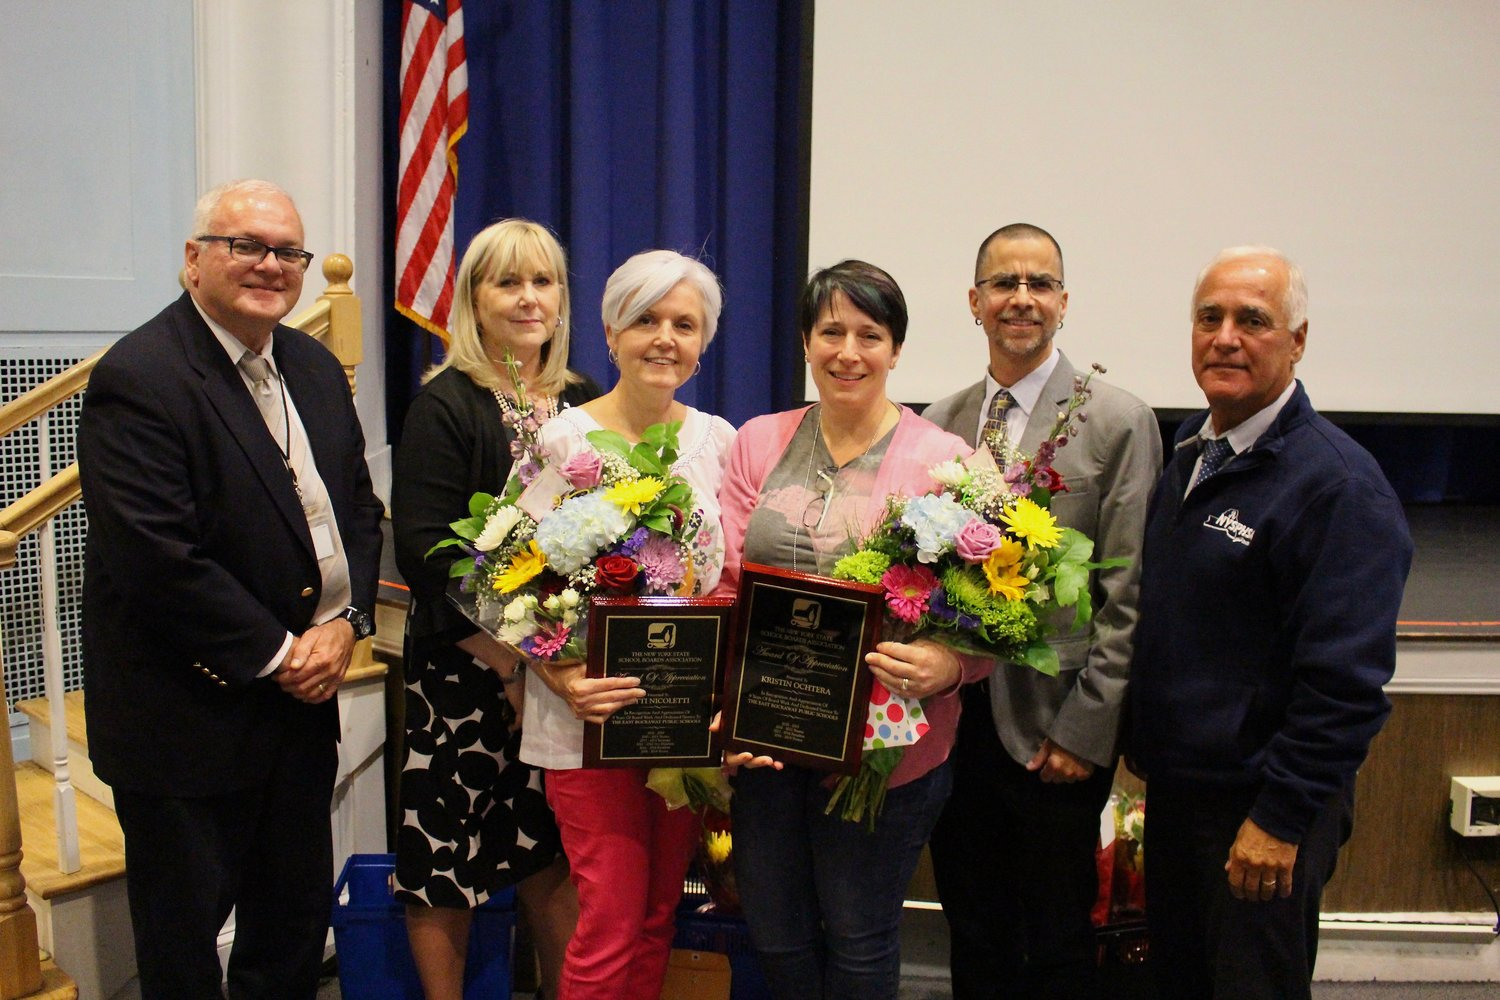 Outgoing longtime Board of Education Trustee Patti Nicoletti and Vice President Kristin Ochtera, center, were recognized by, from left, Trustee Neil Schloth, Superintendent Lisa Ruiz, board President Keith Gamache and Trustee Dom Vulpis.